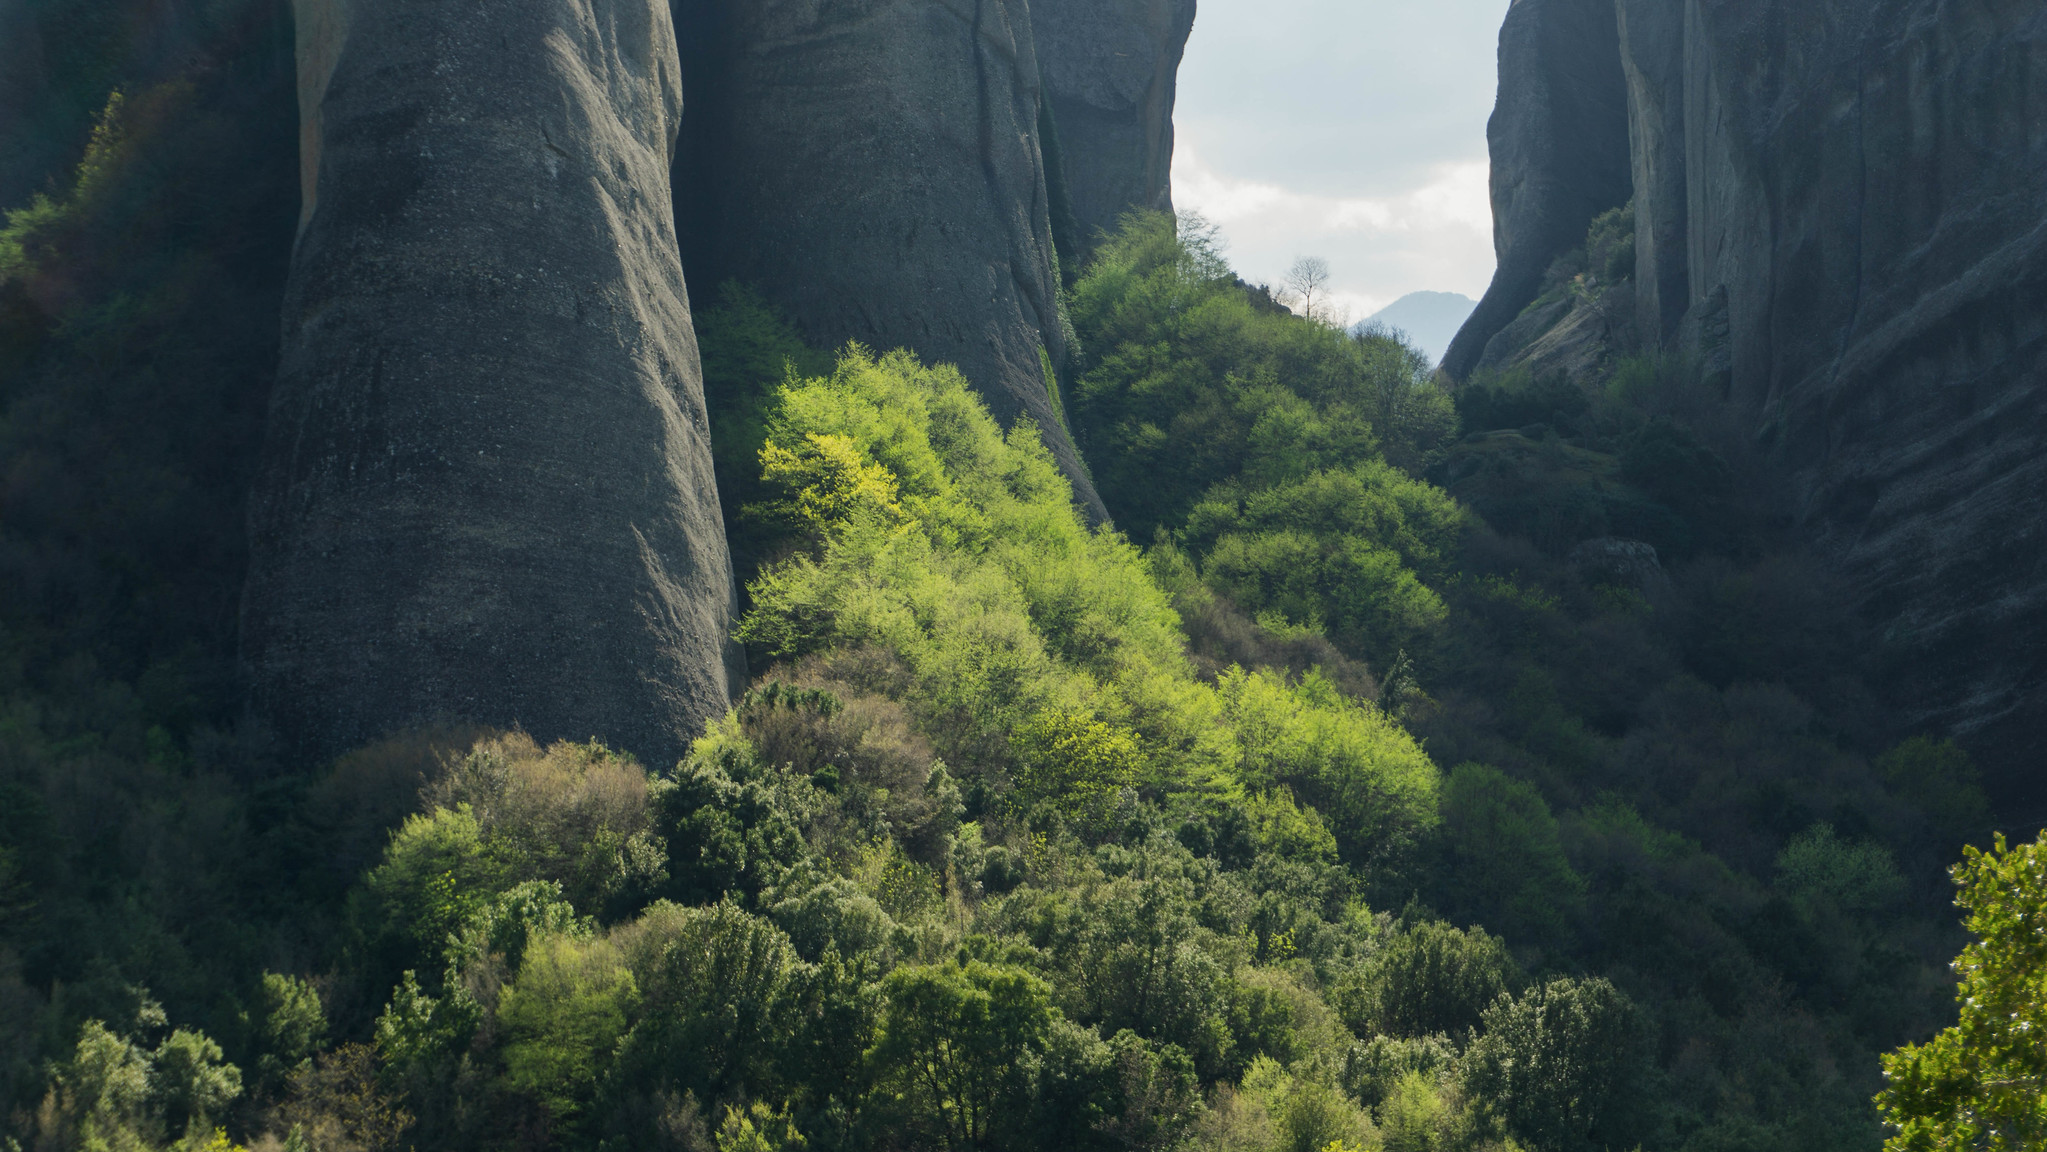 Lush green forest between the conglomerate towers of Meteora